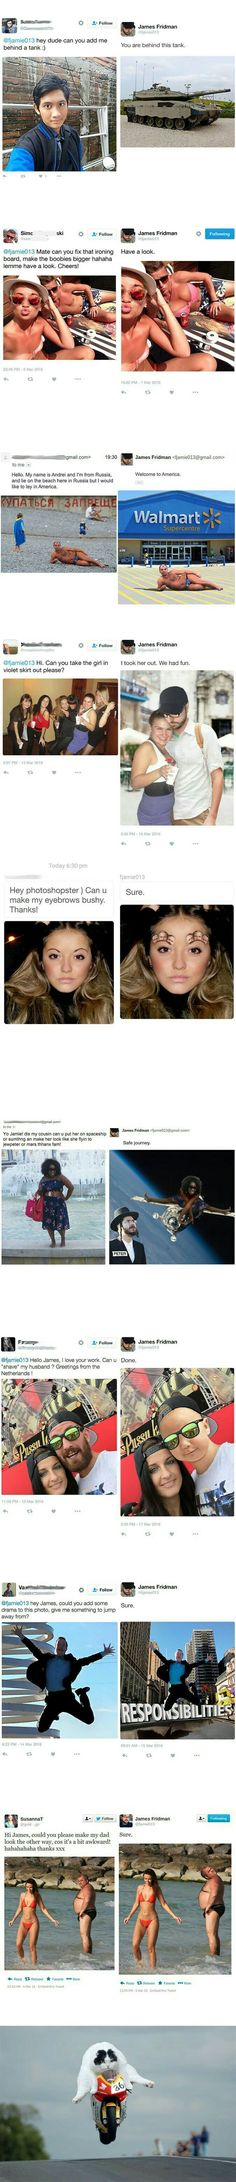 When Photoshop master has his own mind! Part 1 - 9GAG